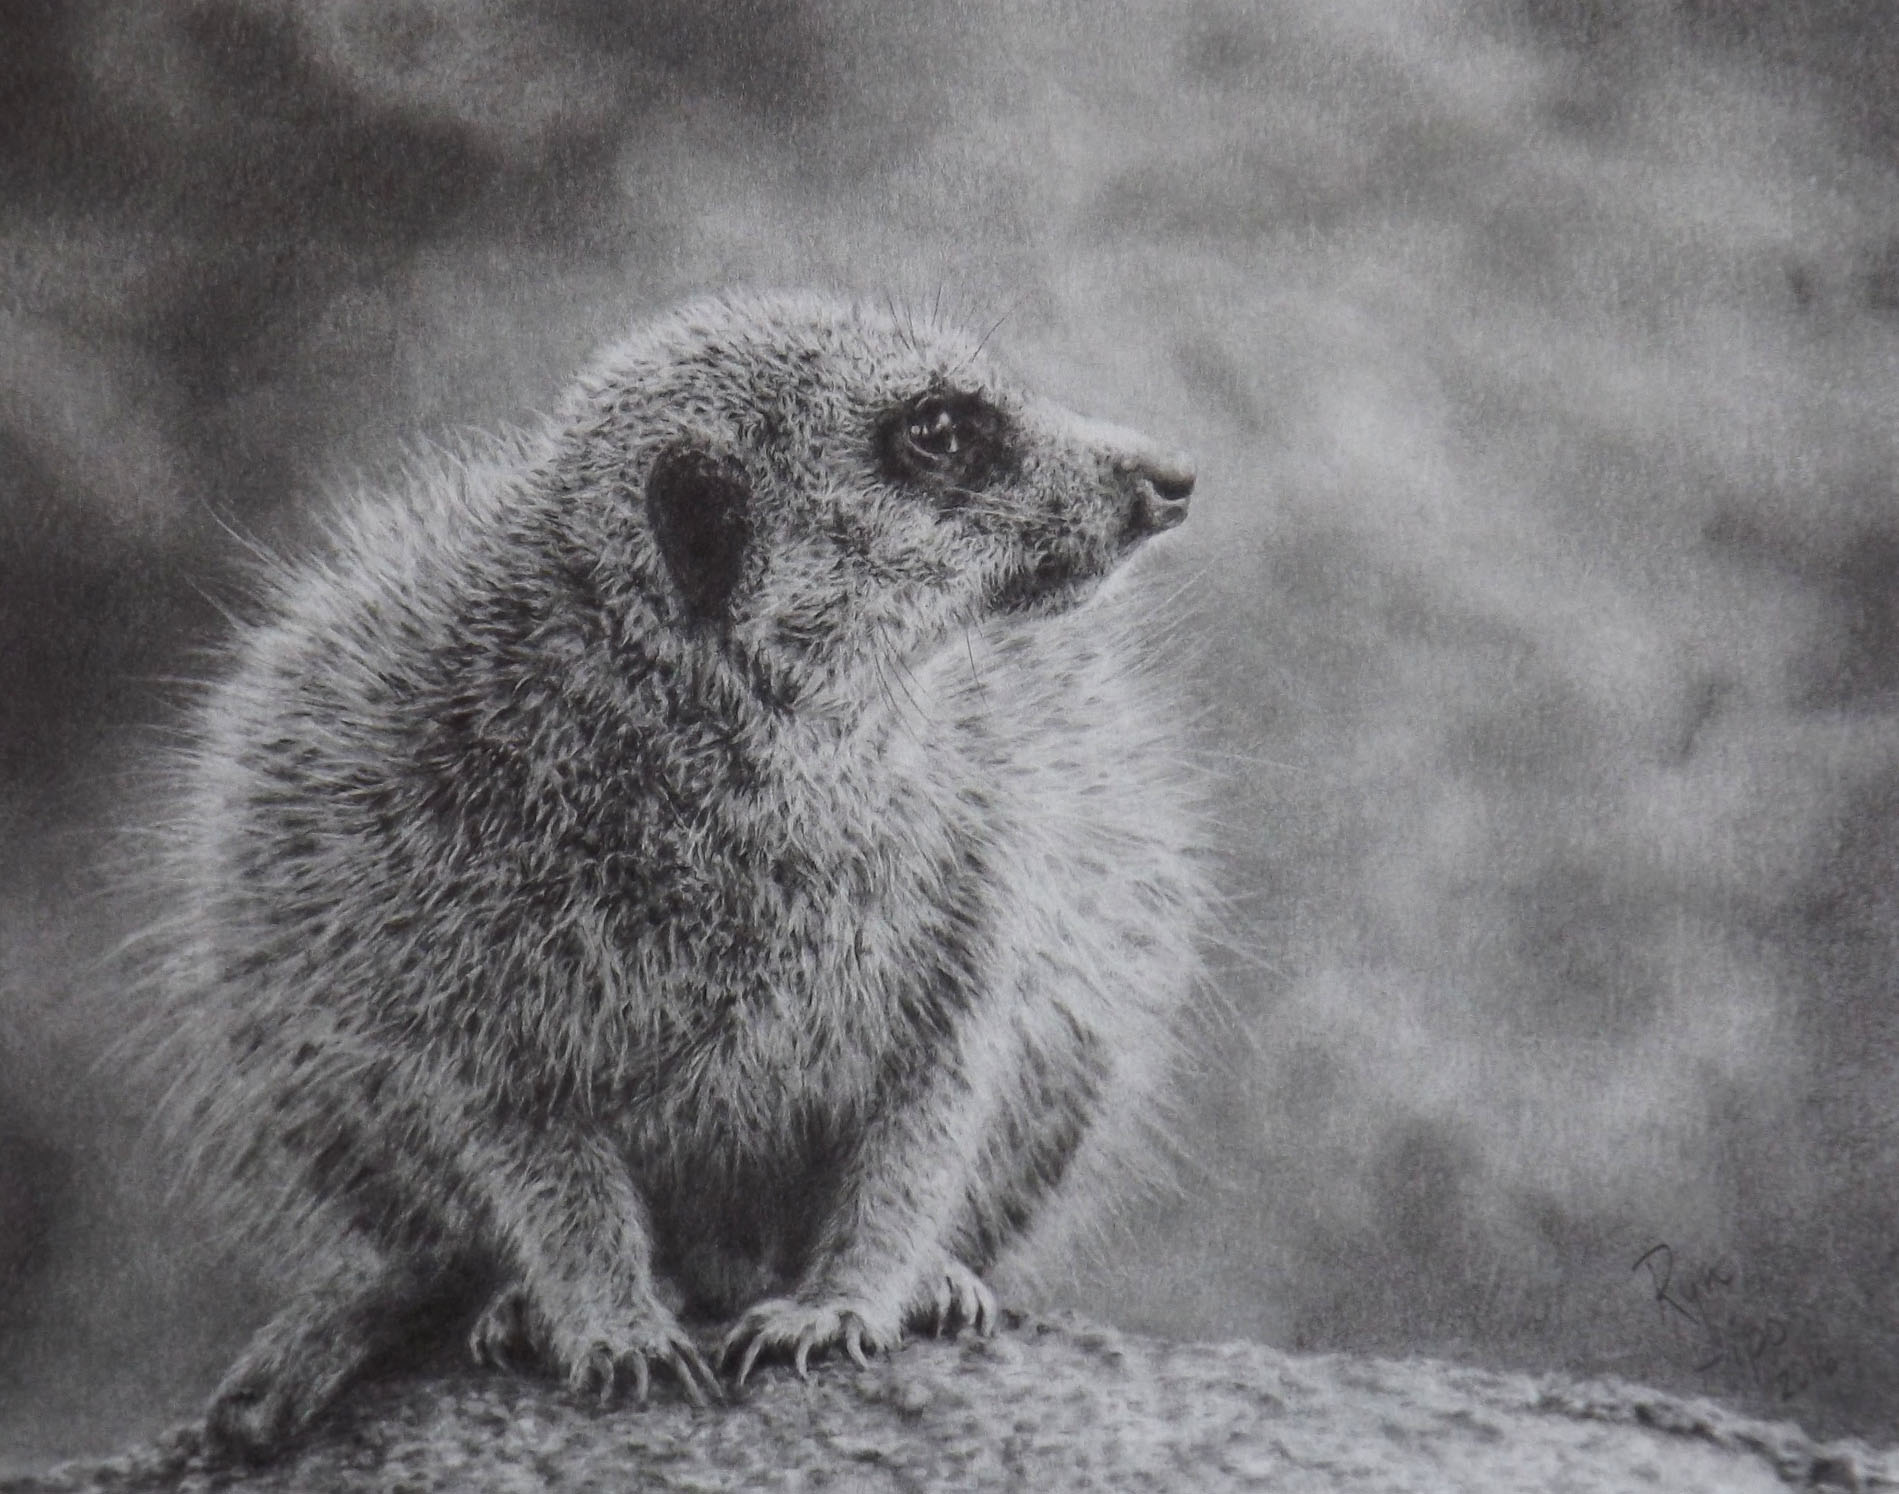 Graphite drawing of a meerkat